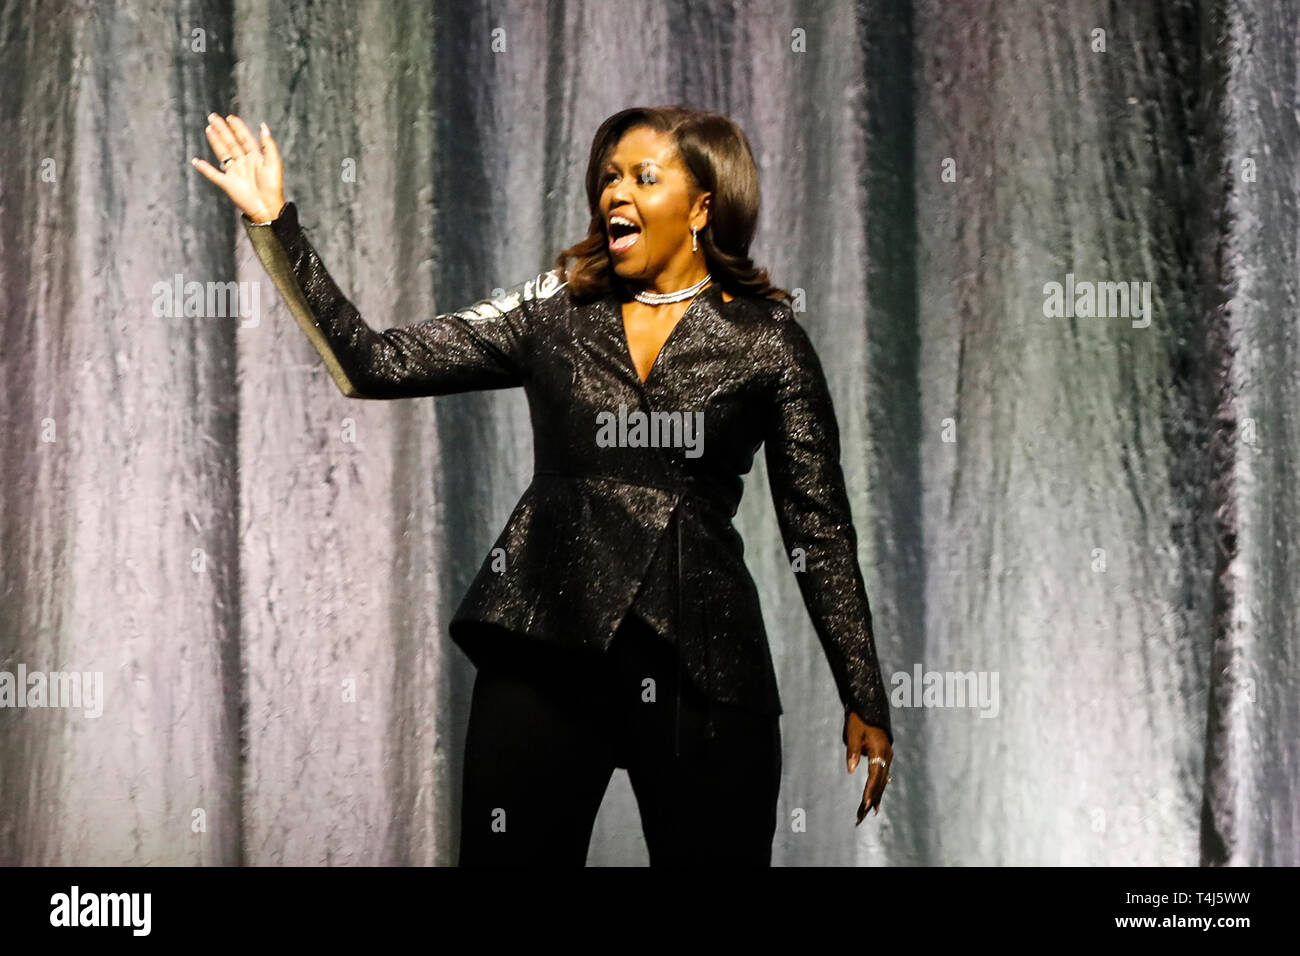 Amsterdam, Pays-Bas. 17 avr, 2019. AMSTERDAM, 17-04-2019, Ziggo Dome, Michelle Obama au cours de la tournée de lecture devenir : une conversation intime avec Michelle Obama : Crédit Photos Pro/Alamy Live News Photo Stock